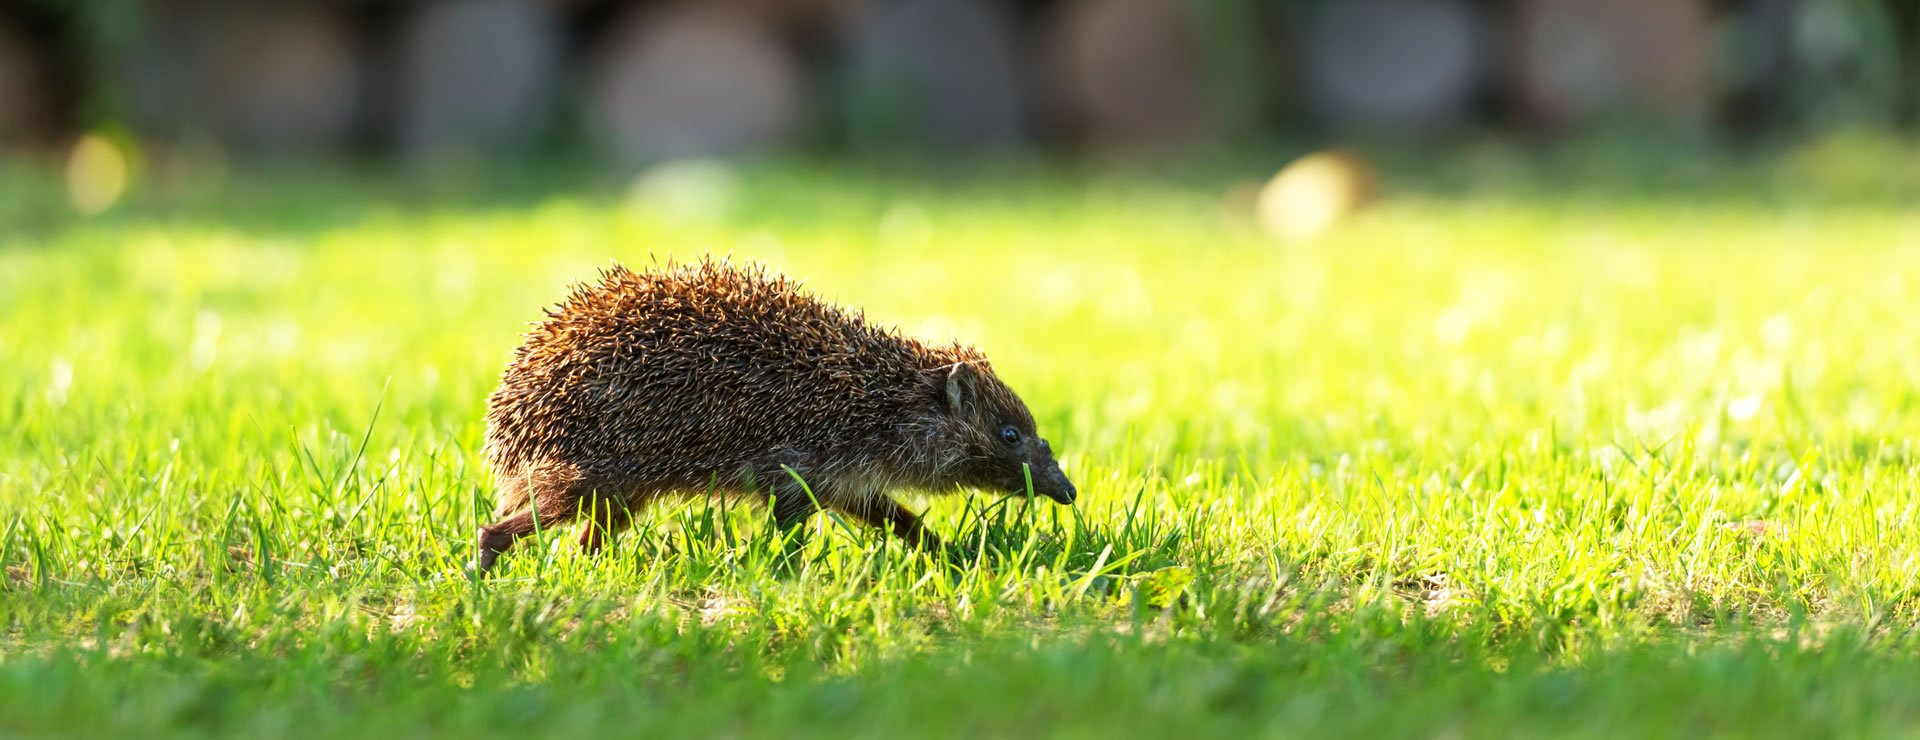 Hedges and Hedgehogs (Part 3 of 3)